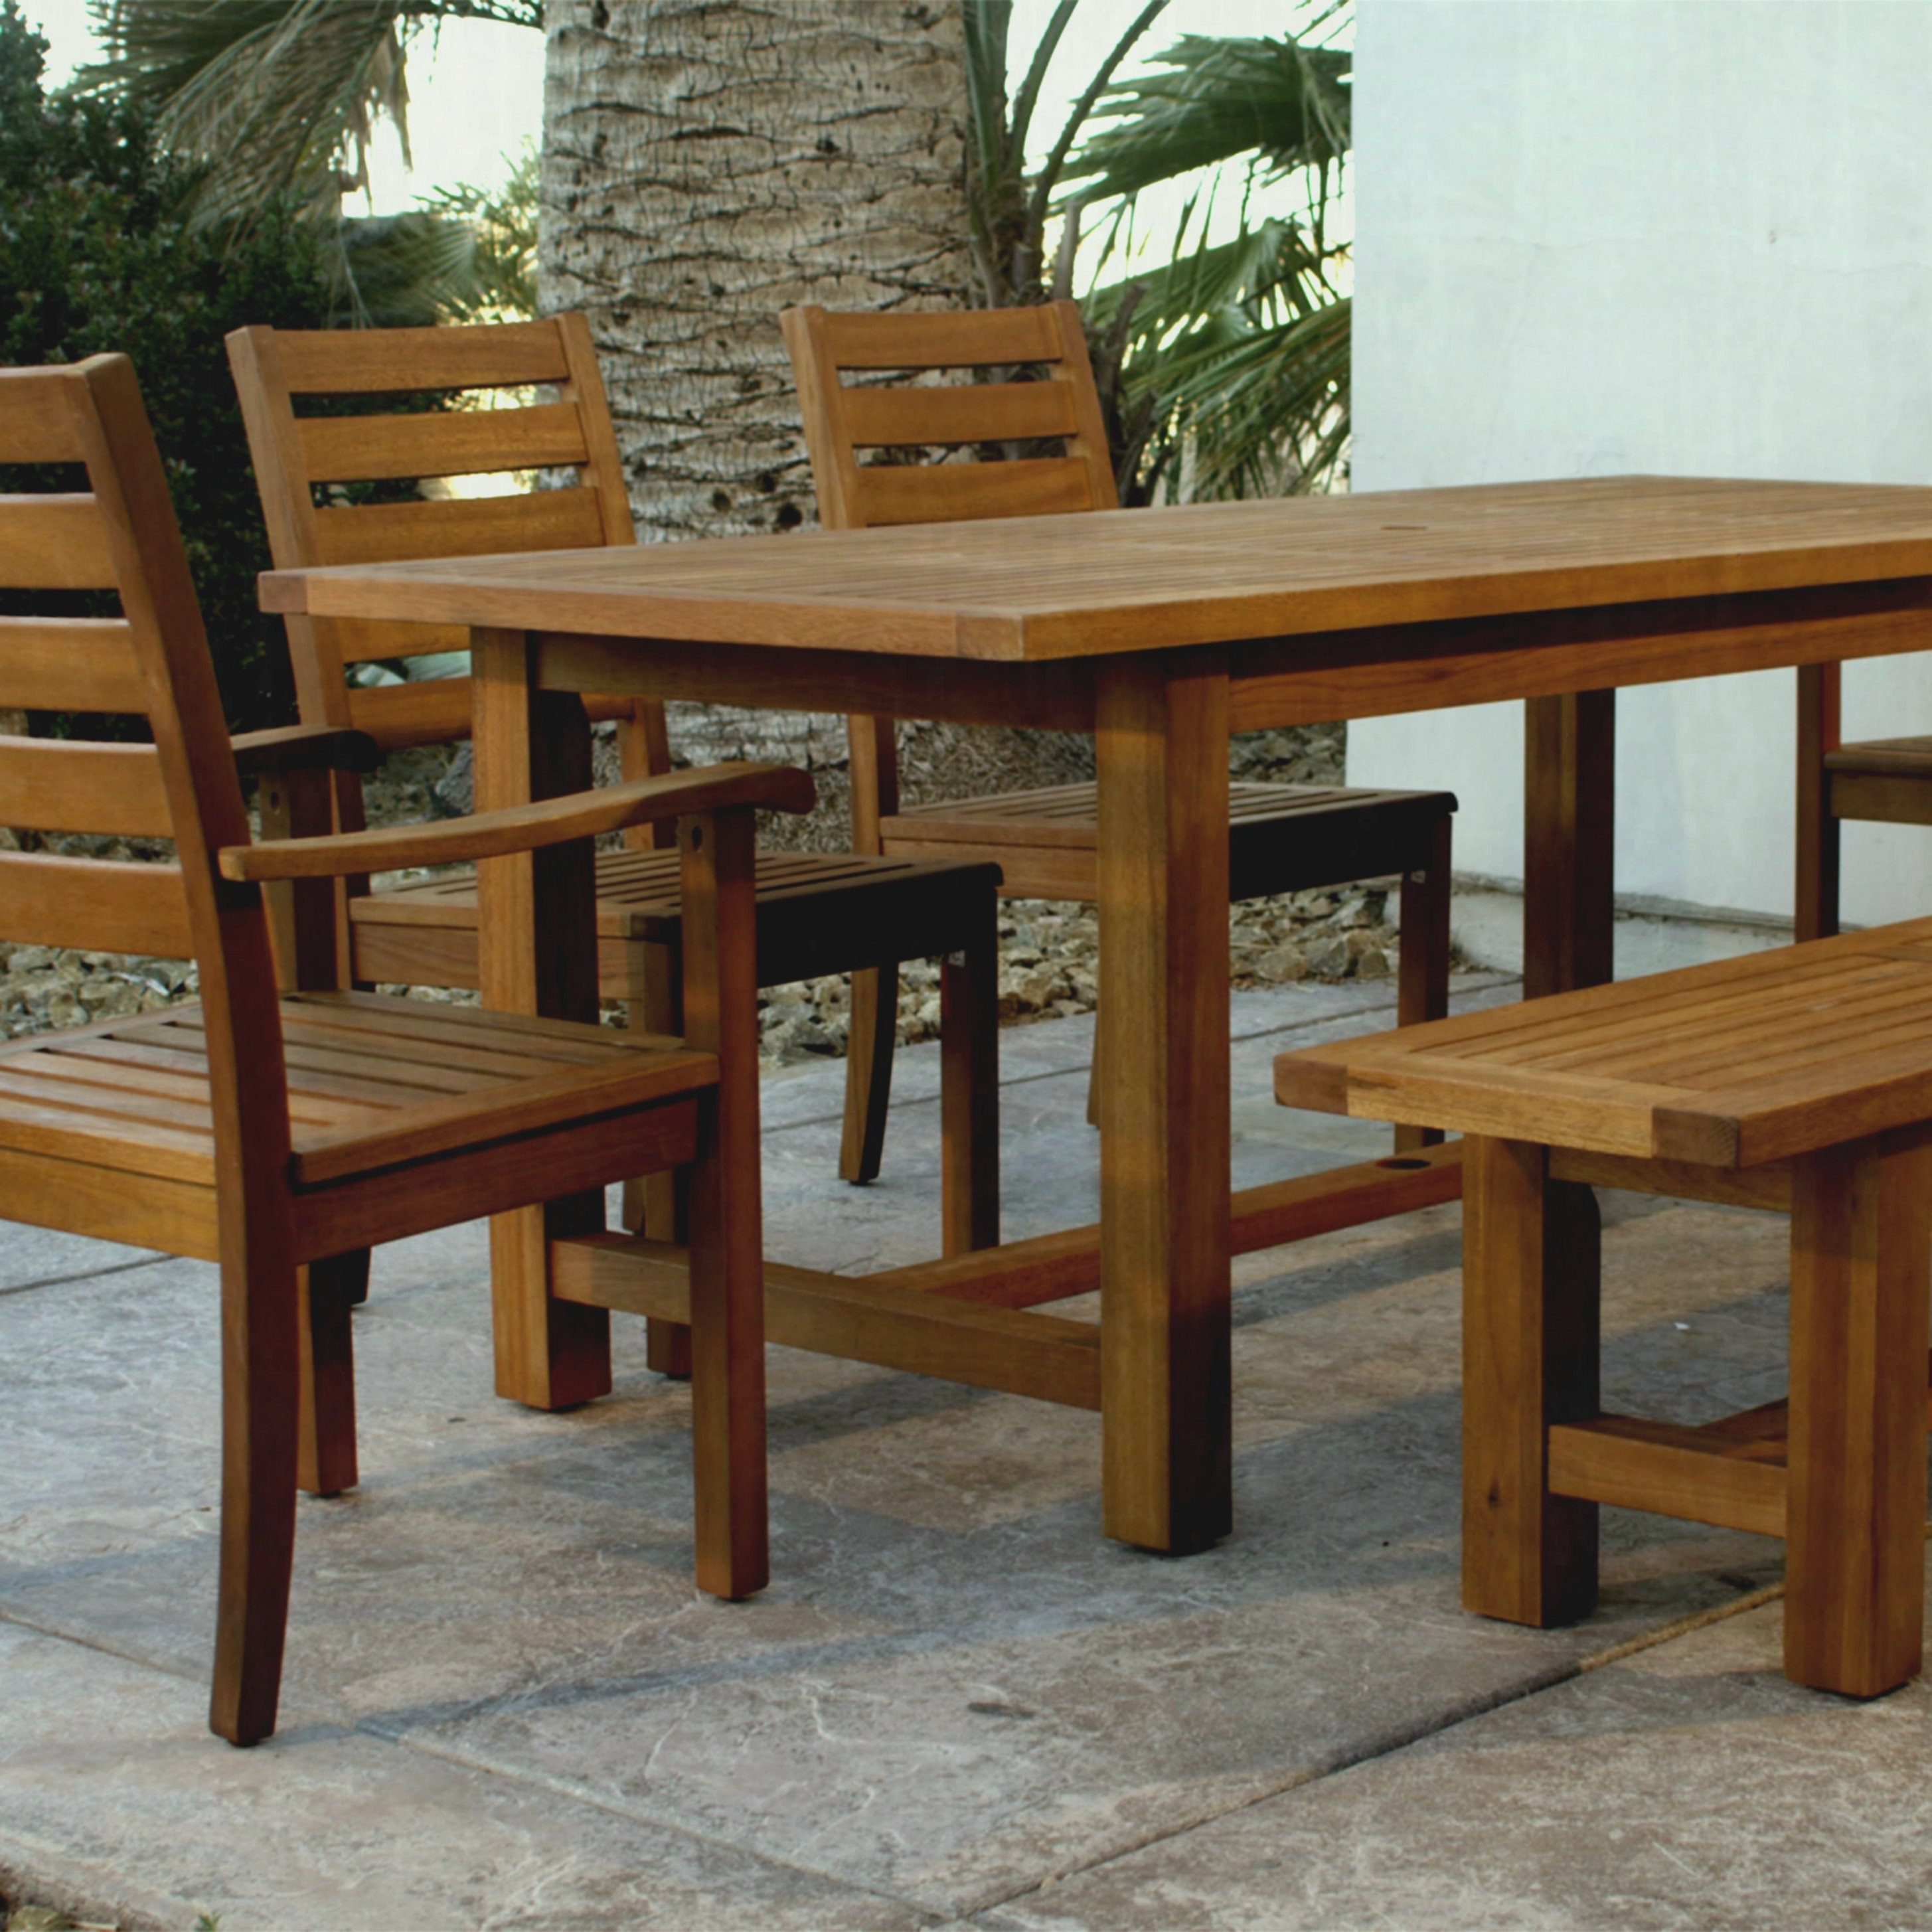 Thumb Img Wood Praiano Outdoor Dining Table World Market – Furniture For Most Current Market Dining Tables (View 9 of 20)